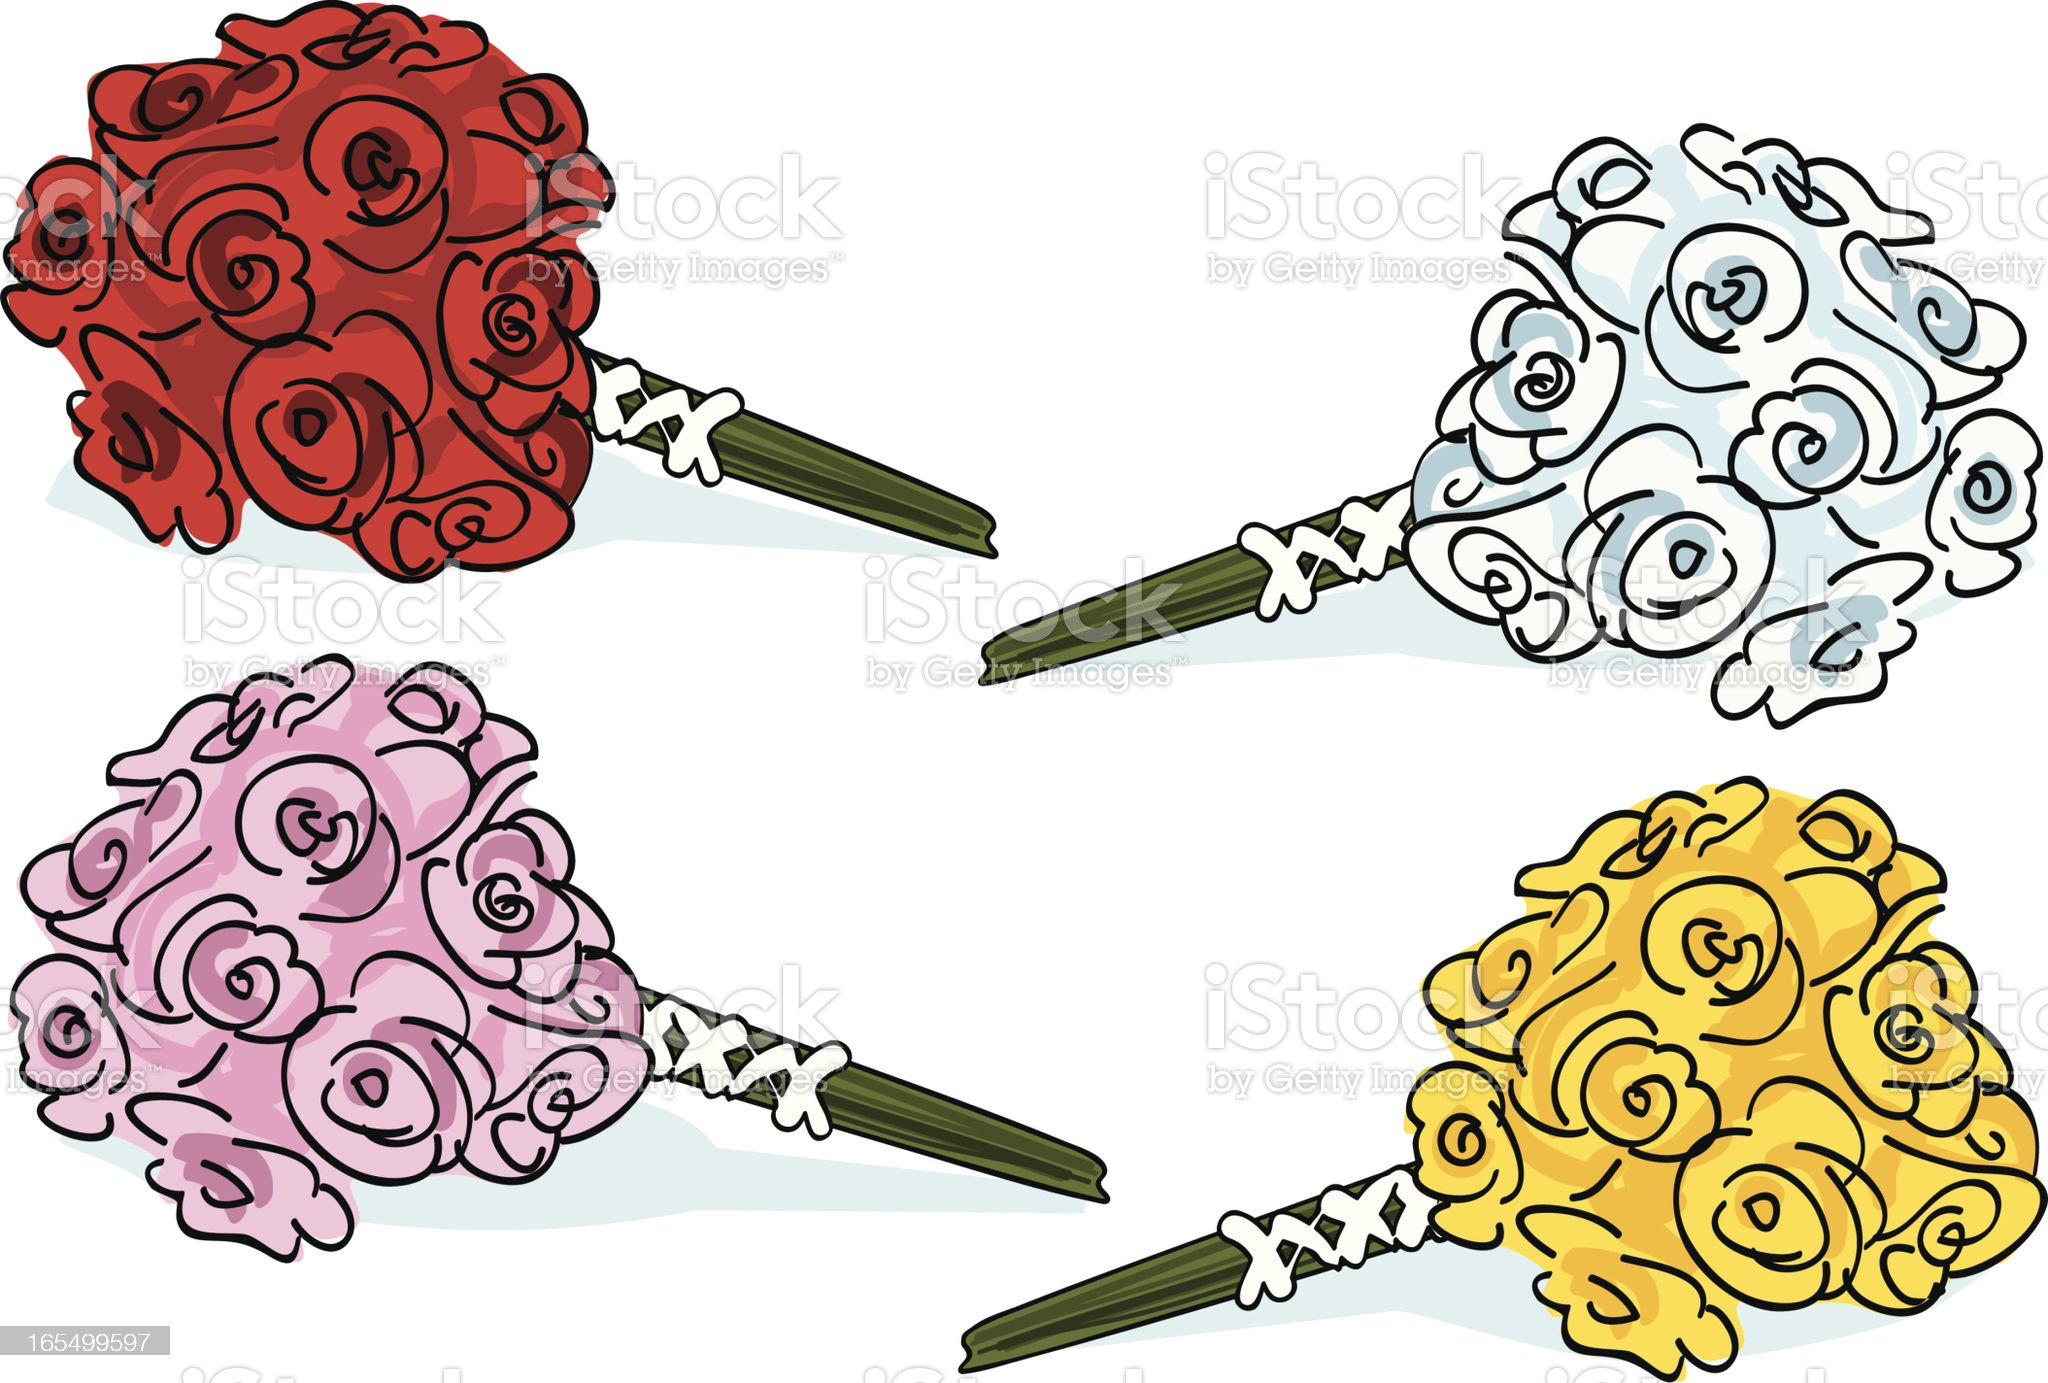 bouquets royalty-free stock vector art